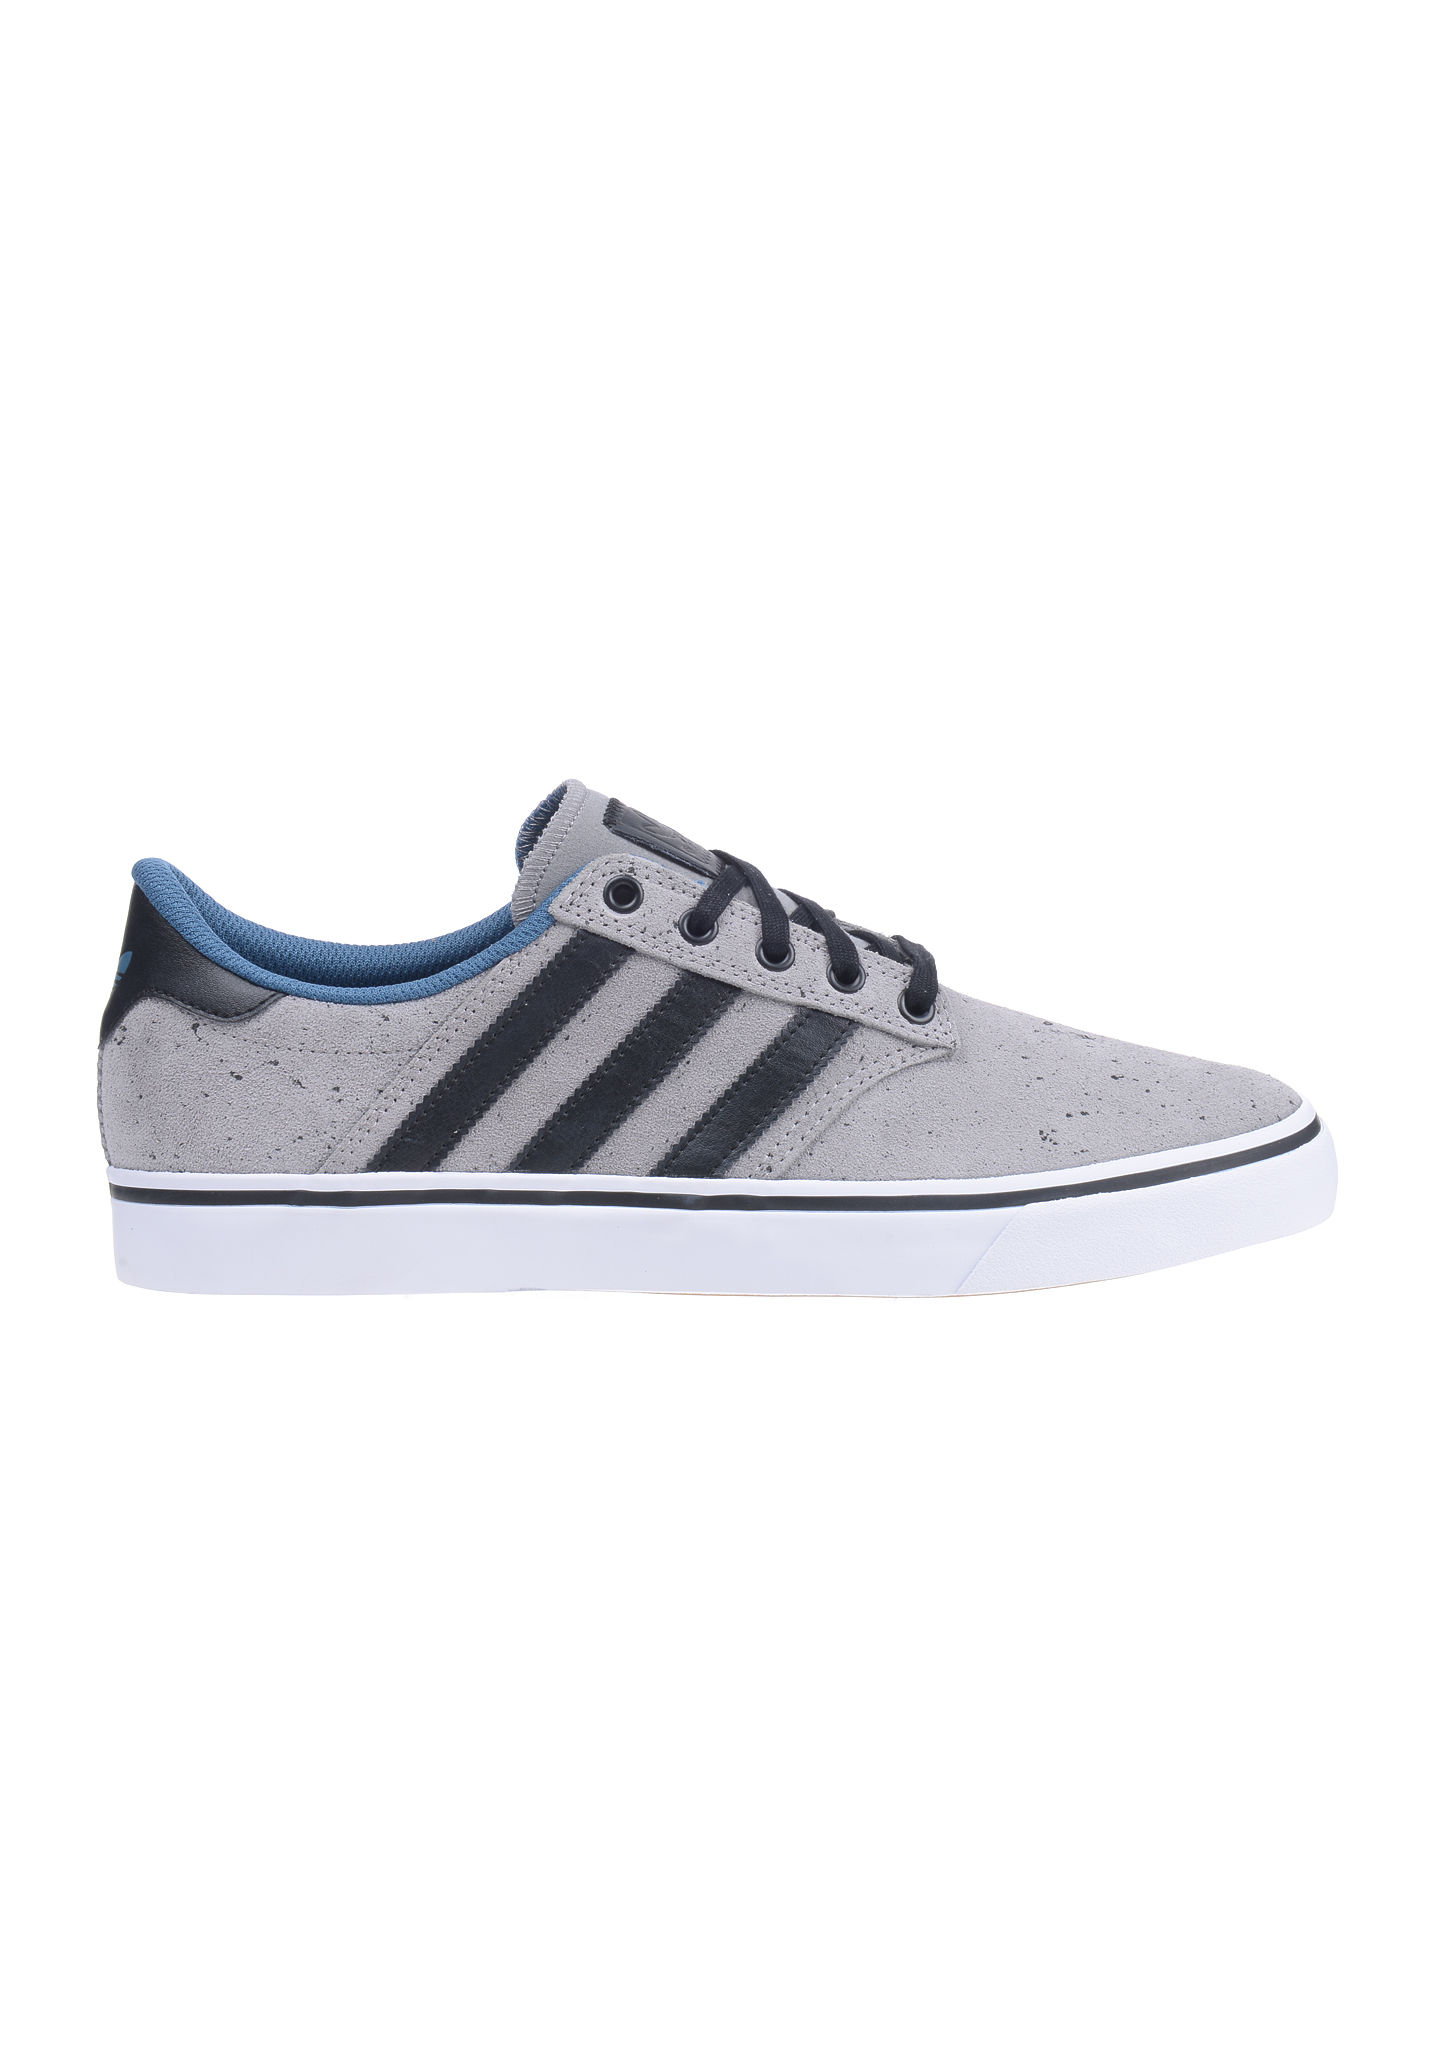 finest selection d867e 0b43f ADIDAS ORIGINALS Seeley Premiere - Sneakers for Men - Grey - Planet Sports